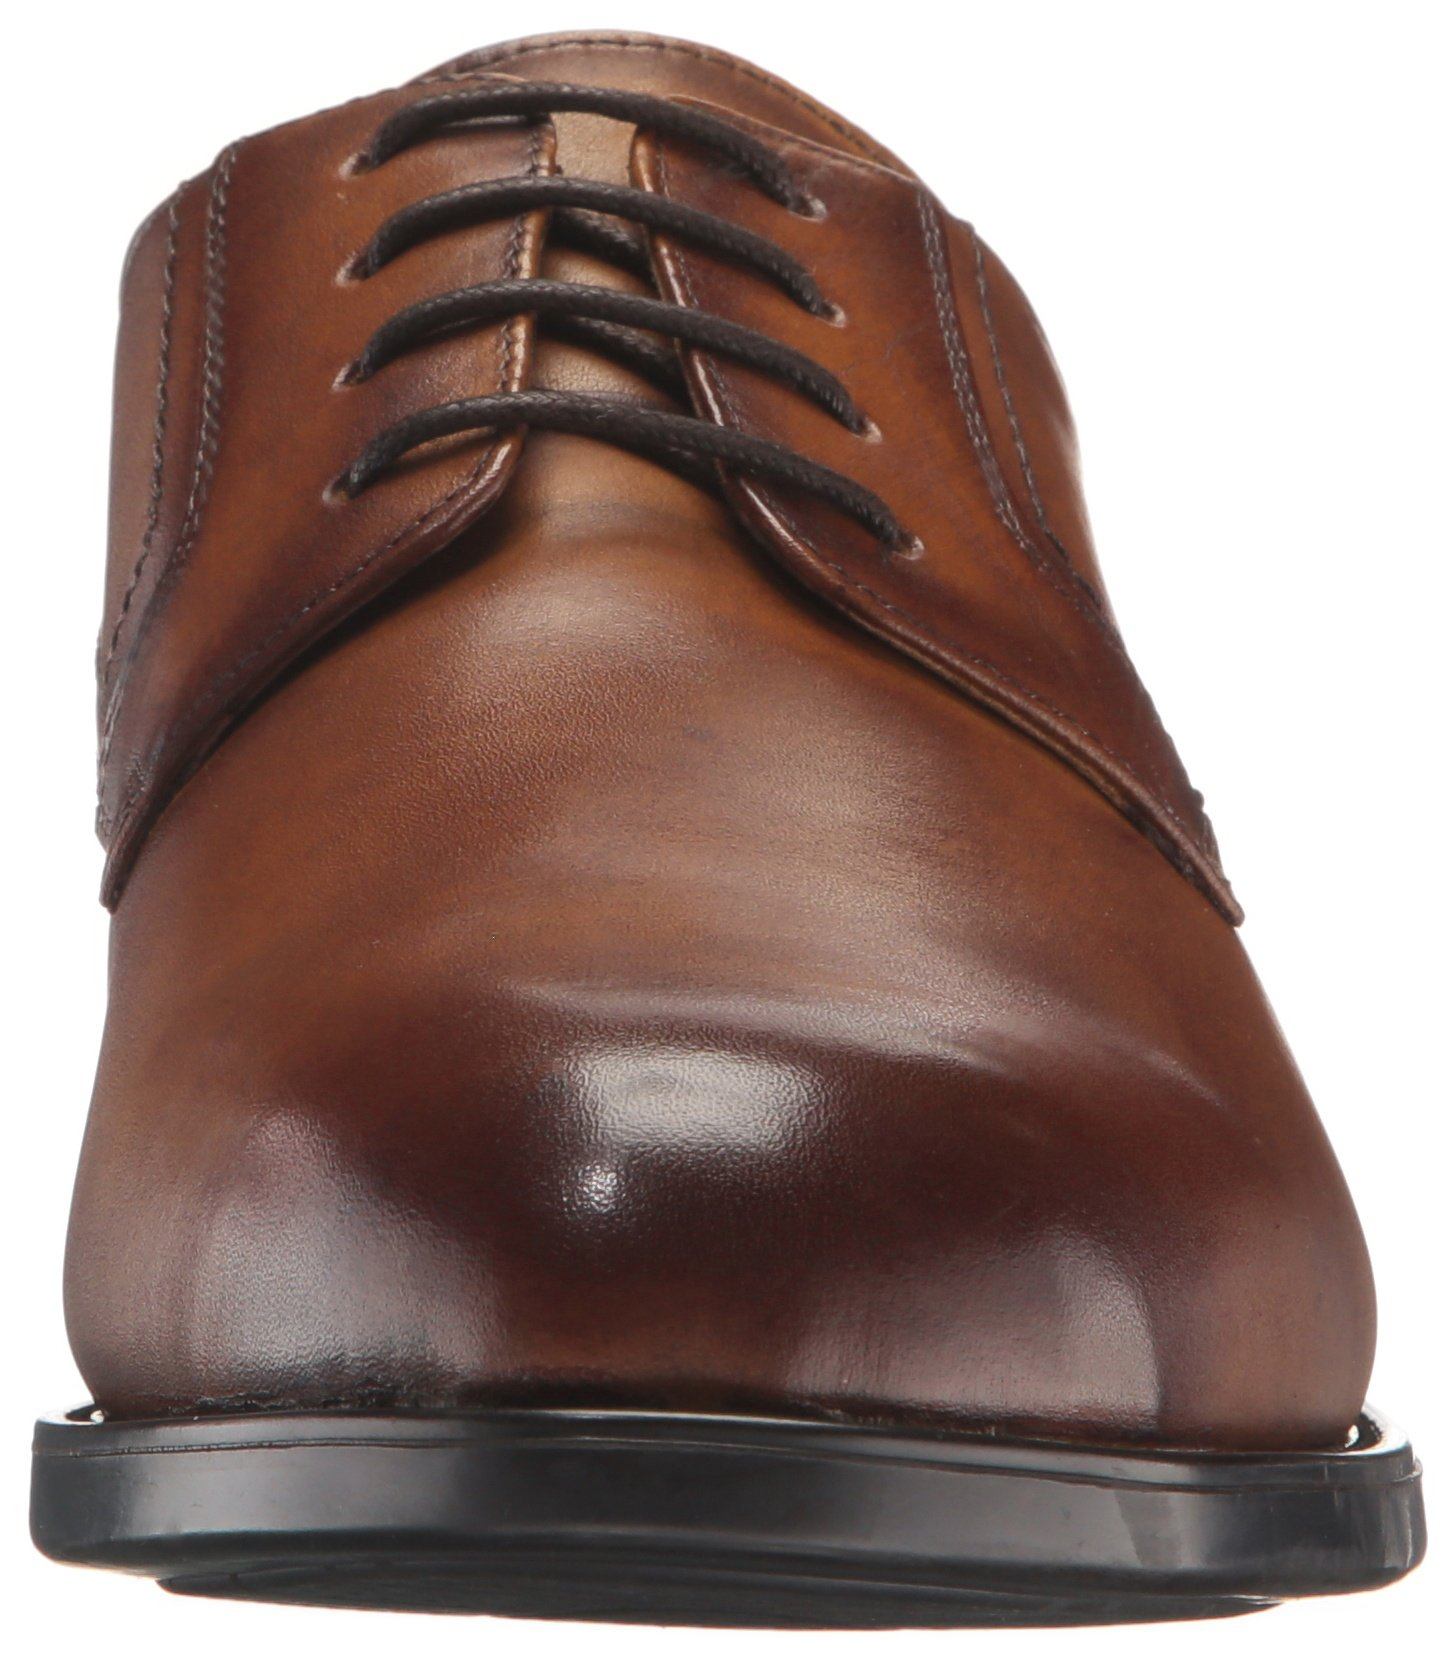 Florsheim Men's Medfield Plain Toe Oxford Dress Shoe, Cognac, 8 D US by Florsheim (Image #4)